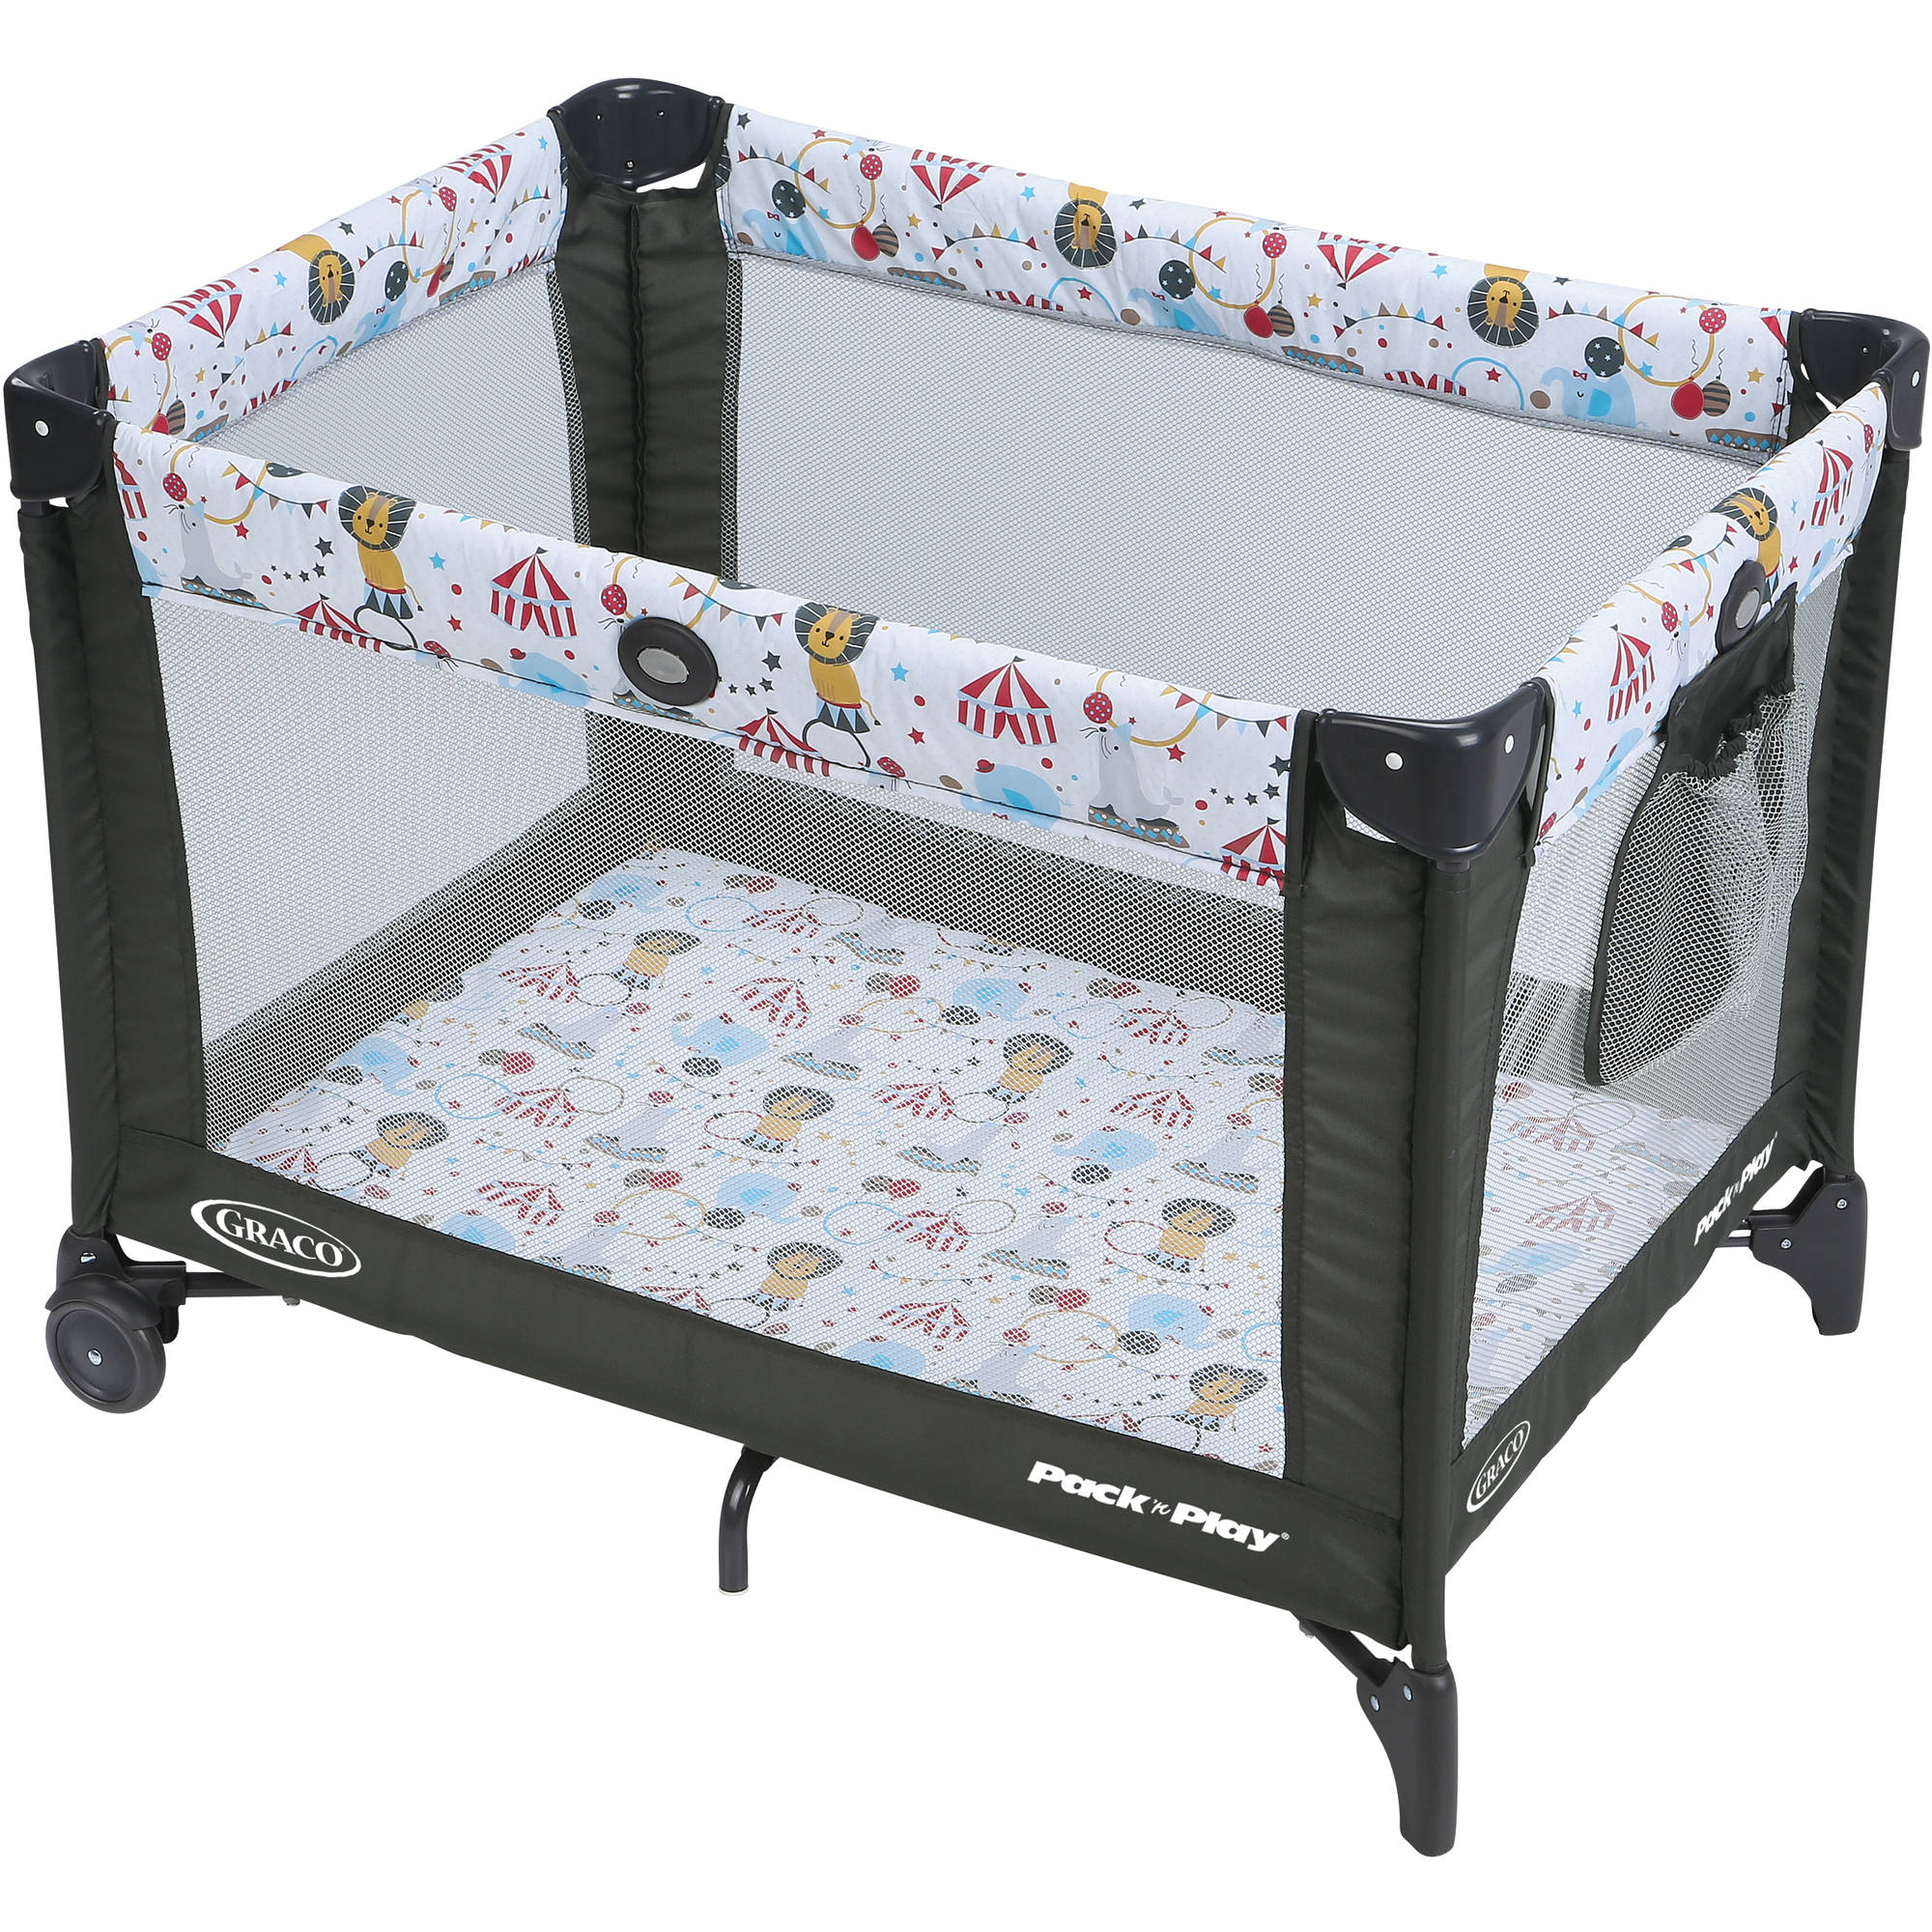 graco pack 'n play travel lite crib portable baby playard crib  - graco pack 'n play travel lite crib portable baby playard crib alma walmartcom